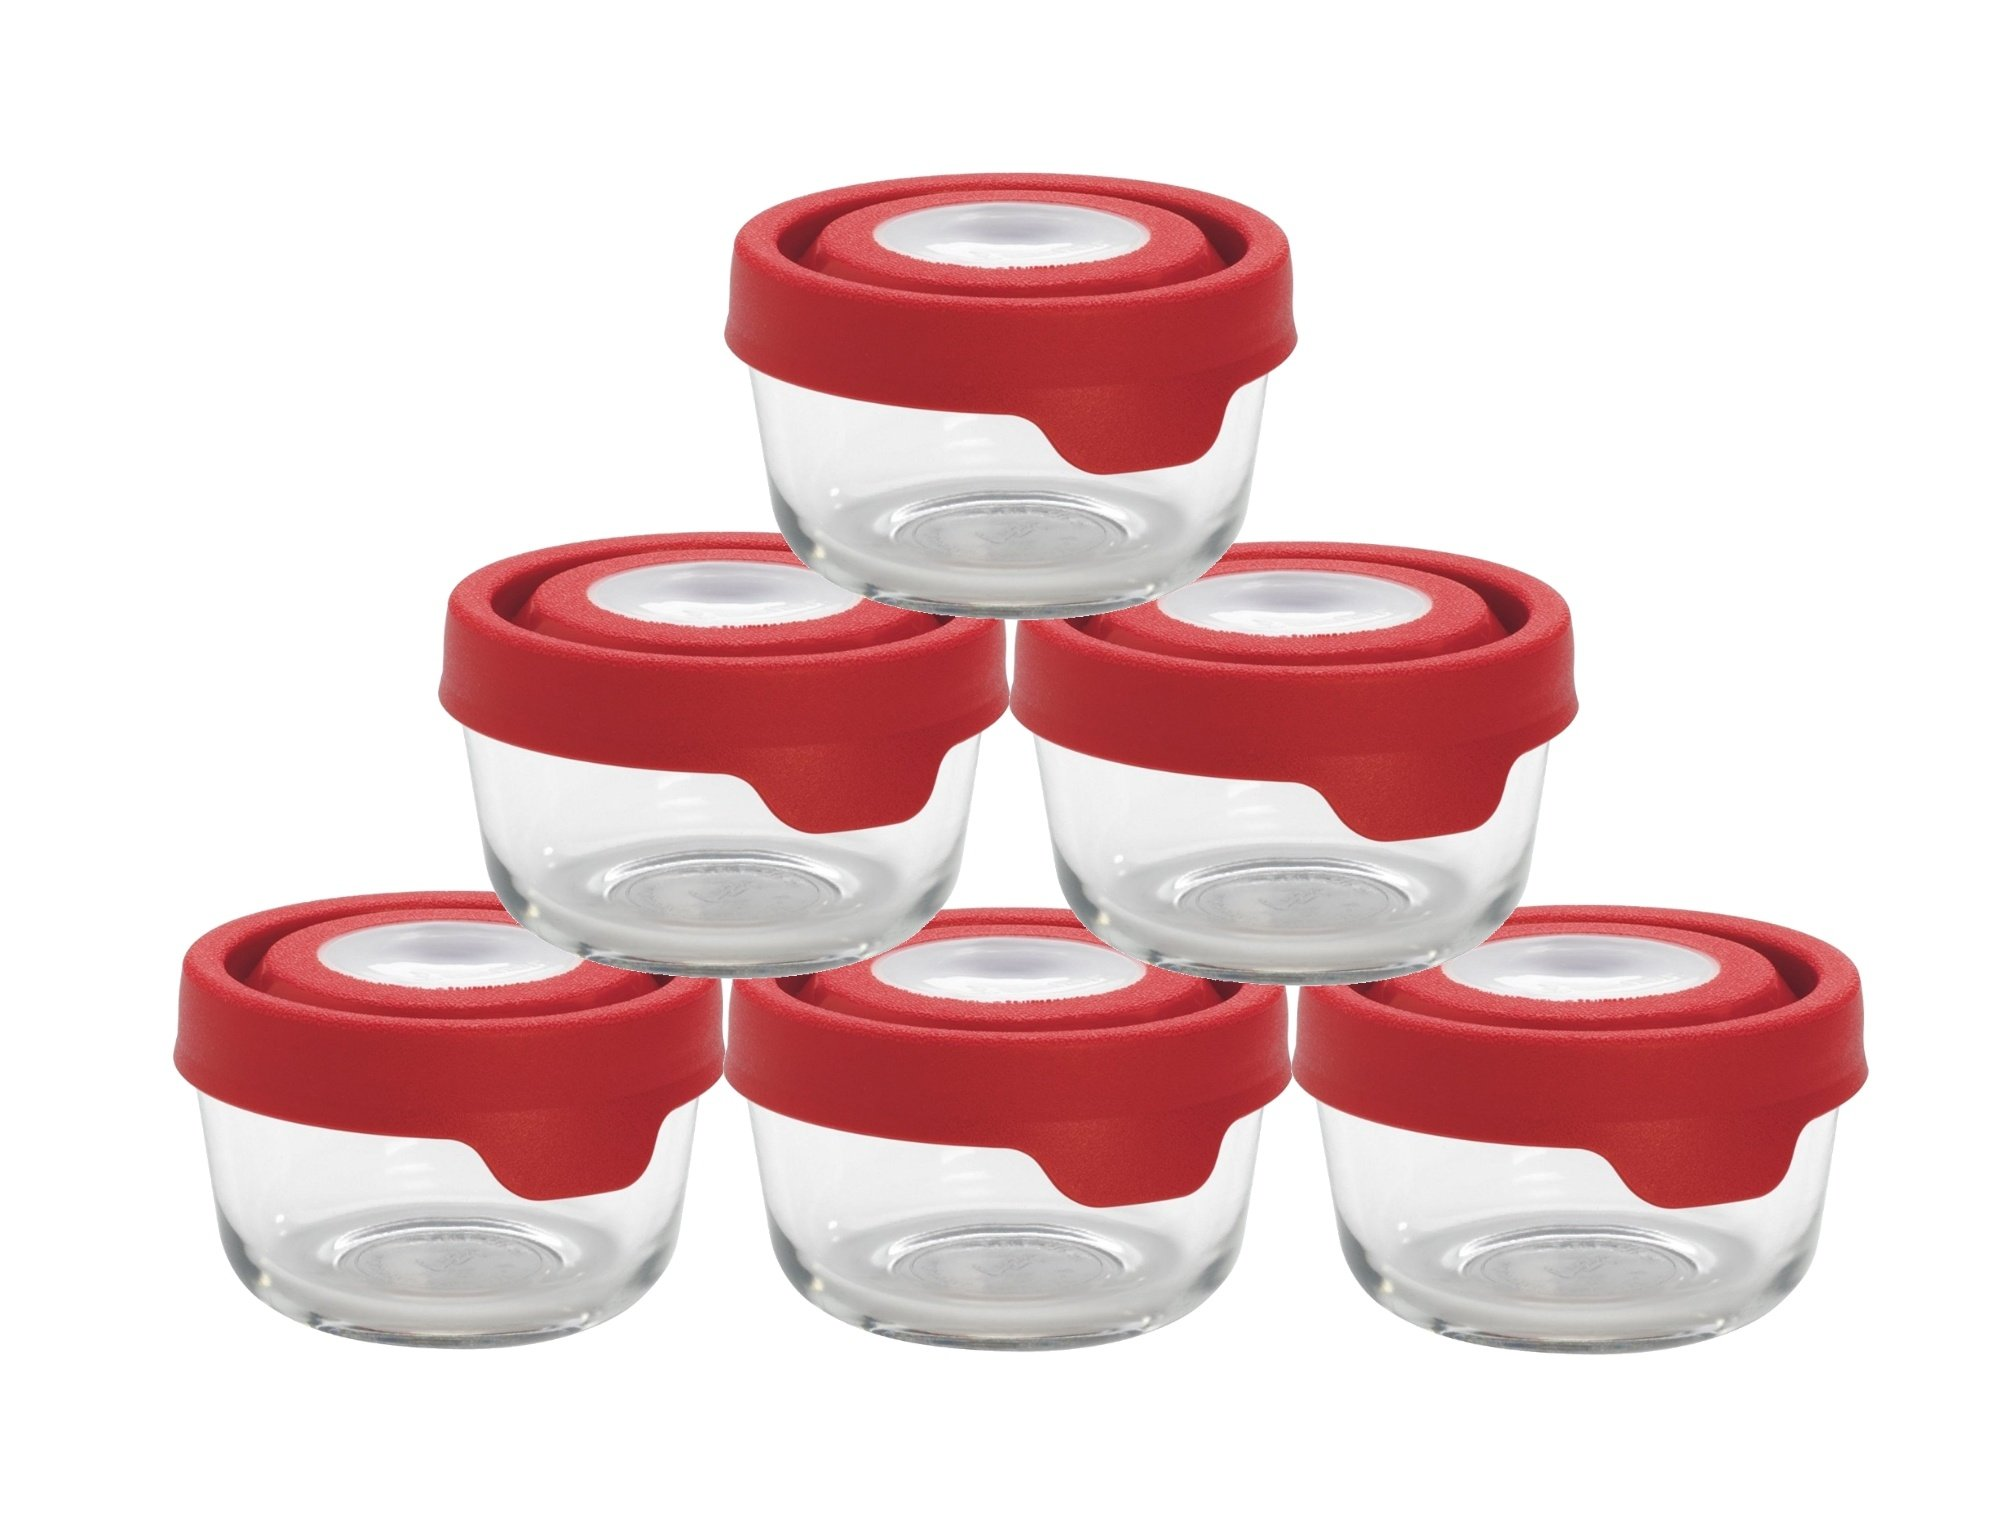 Anchor Hocking TrueSeal Glass Food Storage Containers with Lid, Cherry, 1 Cup (6 Pack)